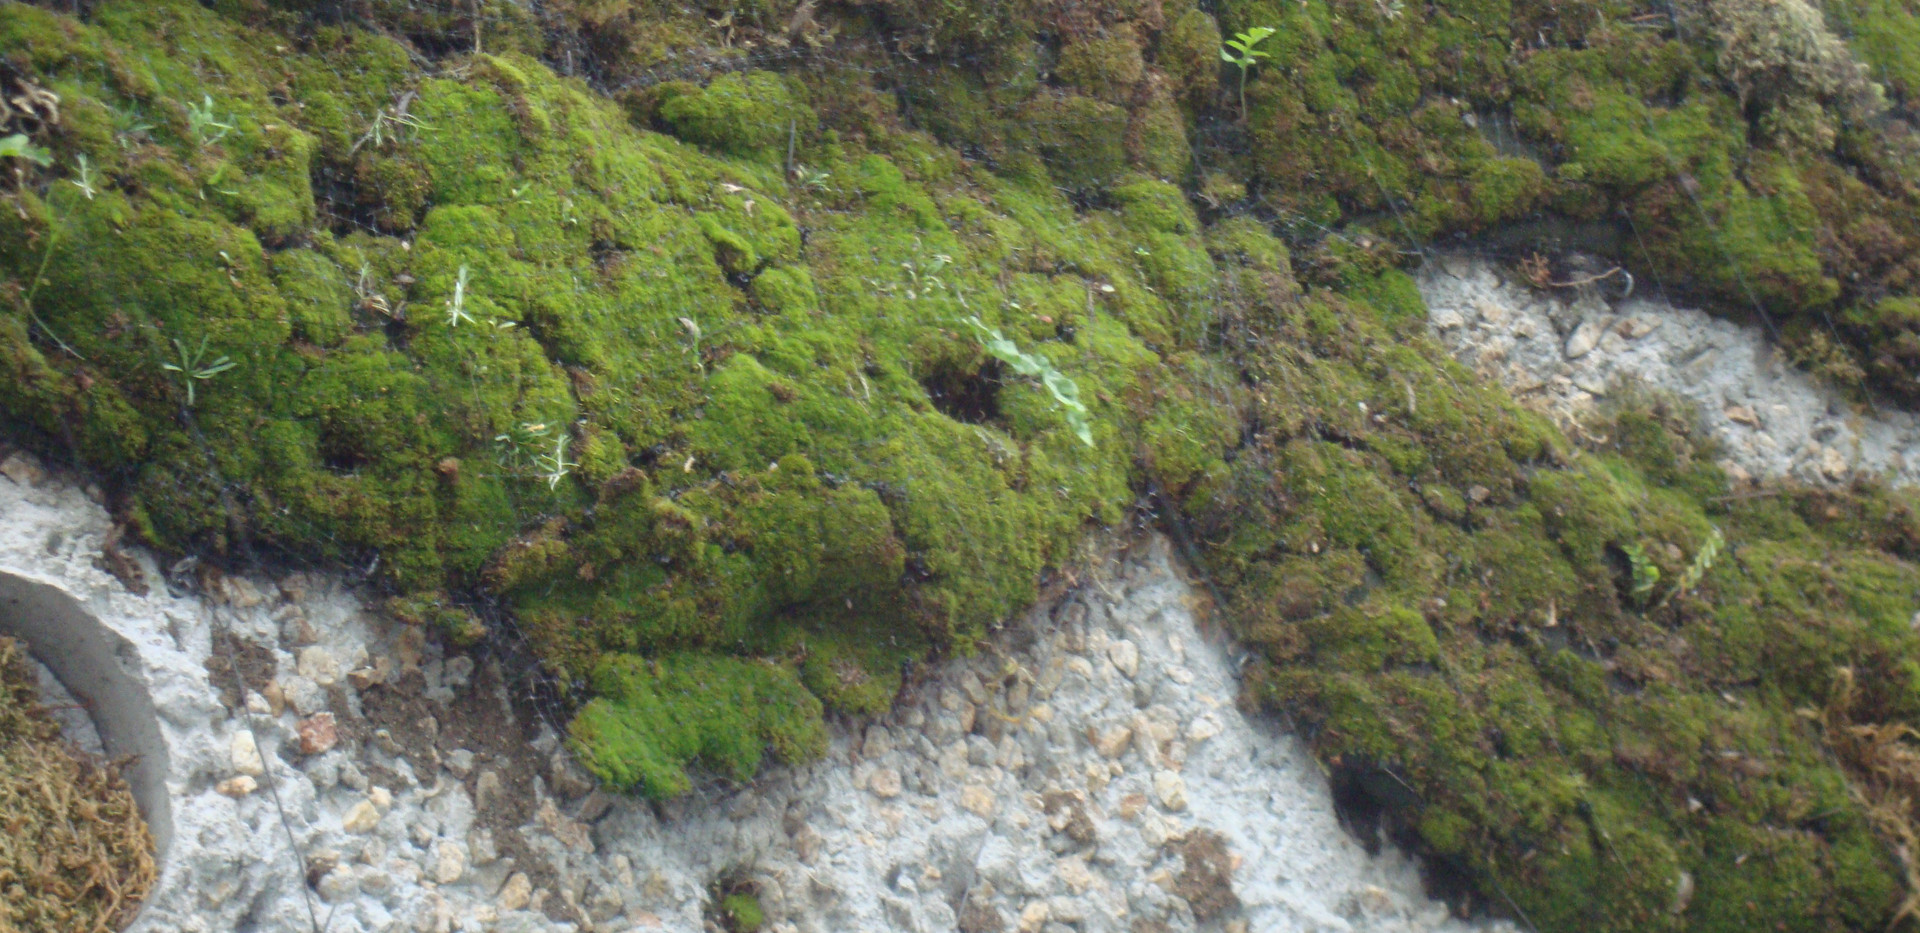 Detail of moss growth.